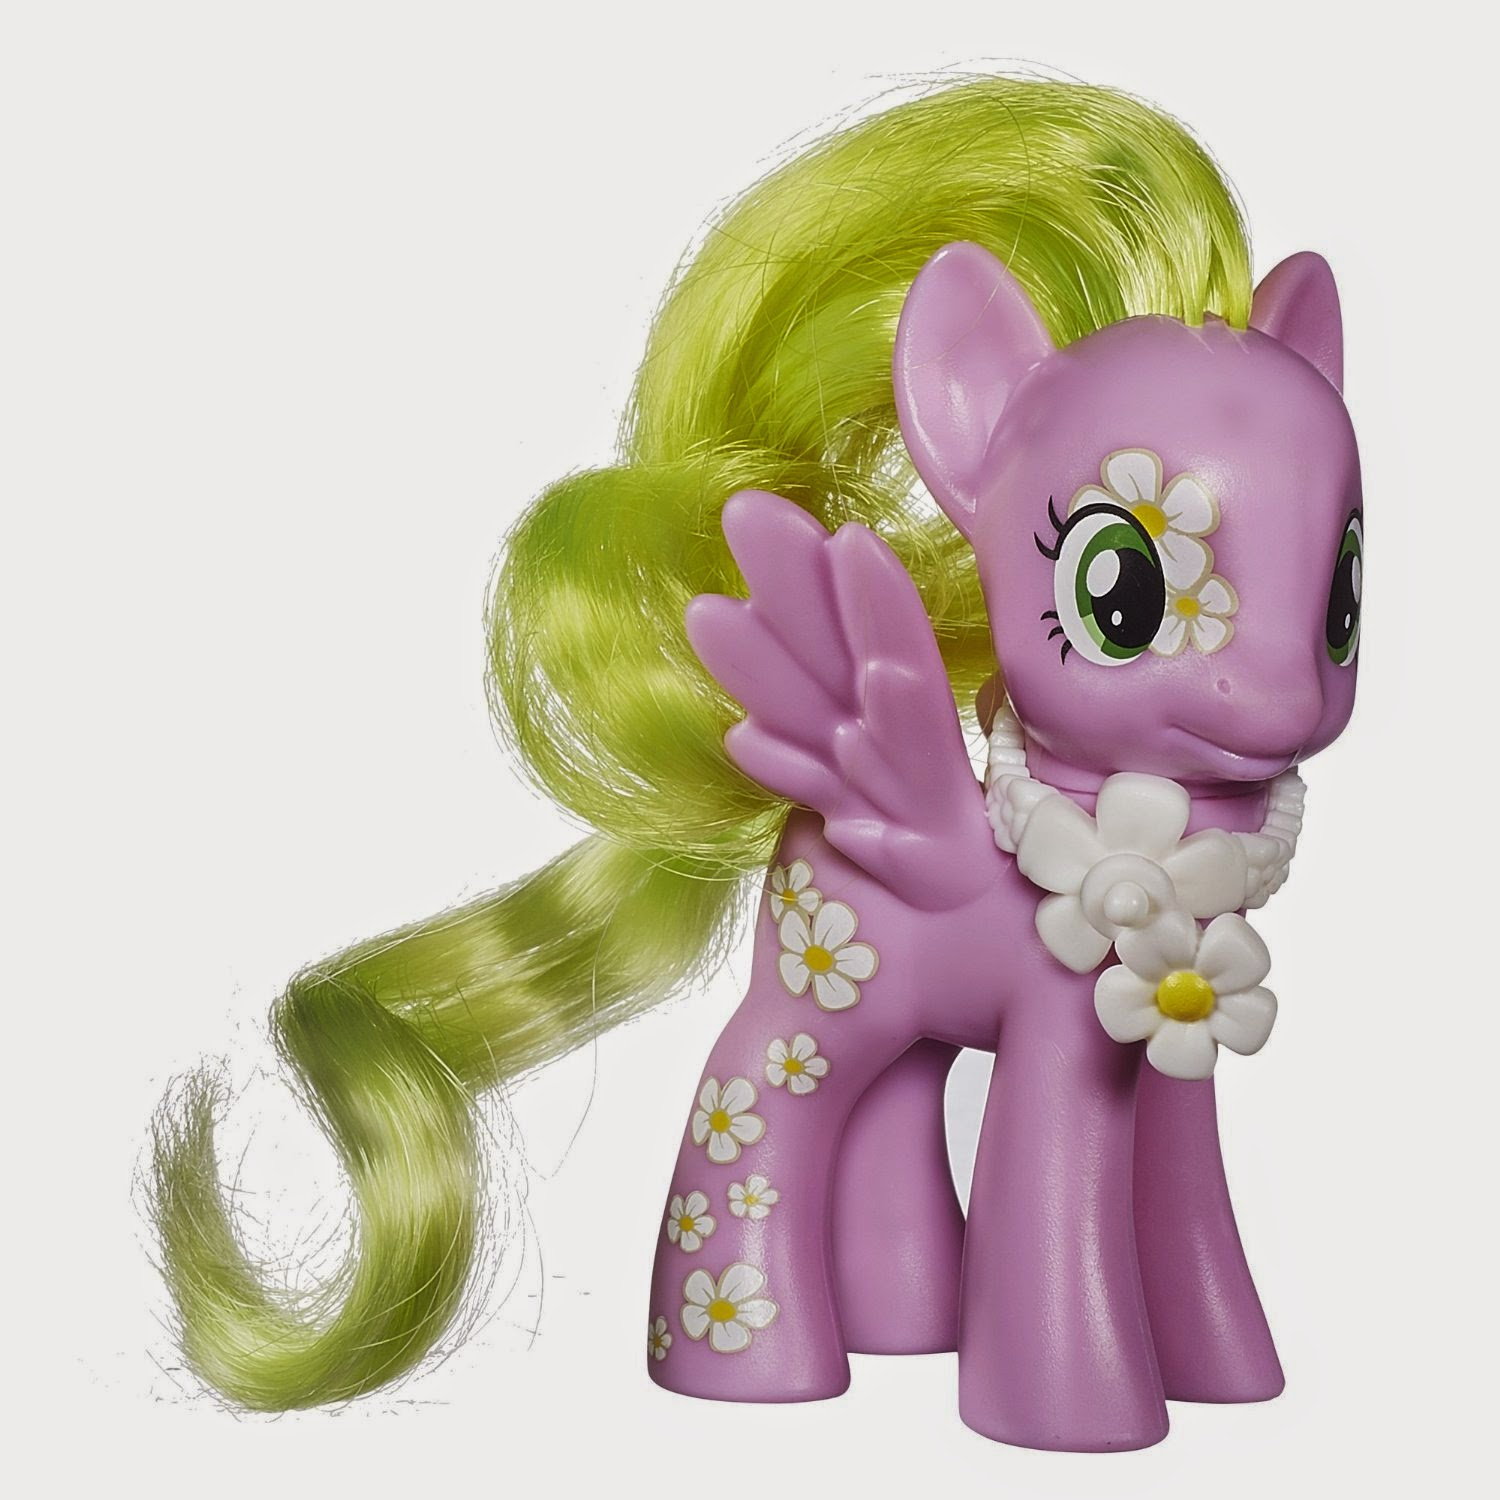 Images found of Flower Wishes Cutie Mark Magic BrushableFlower Wishes Mlp